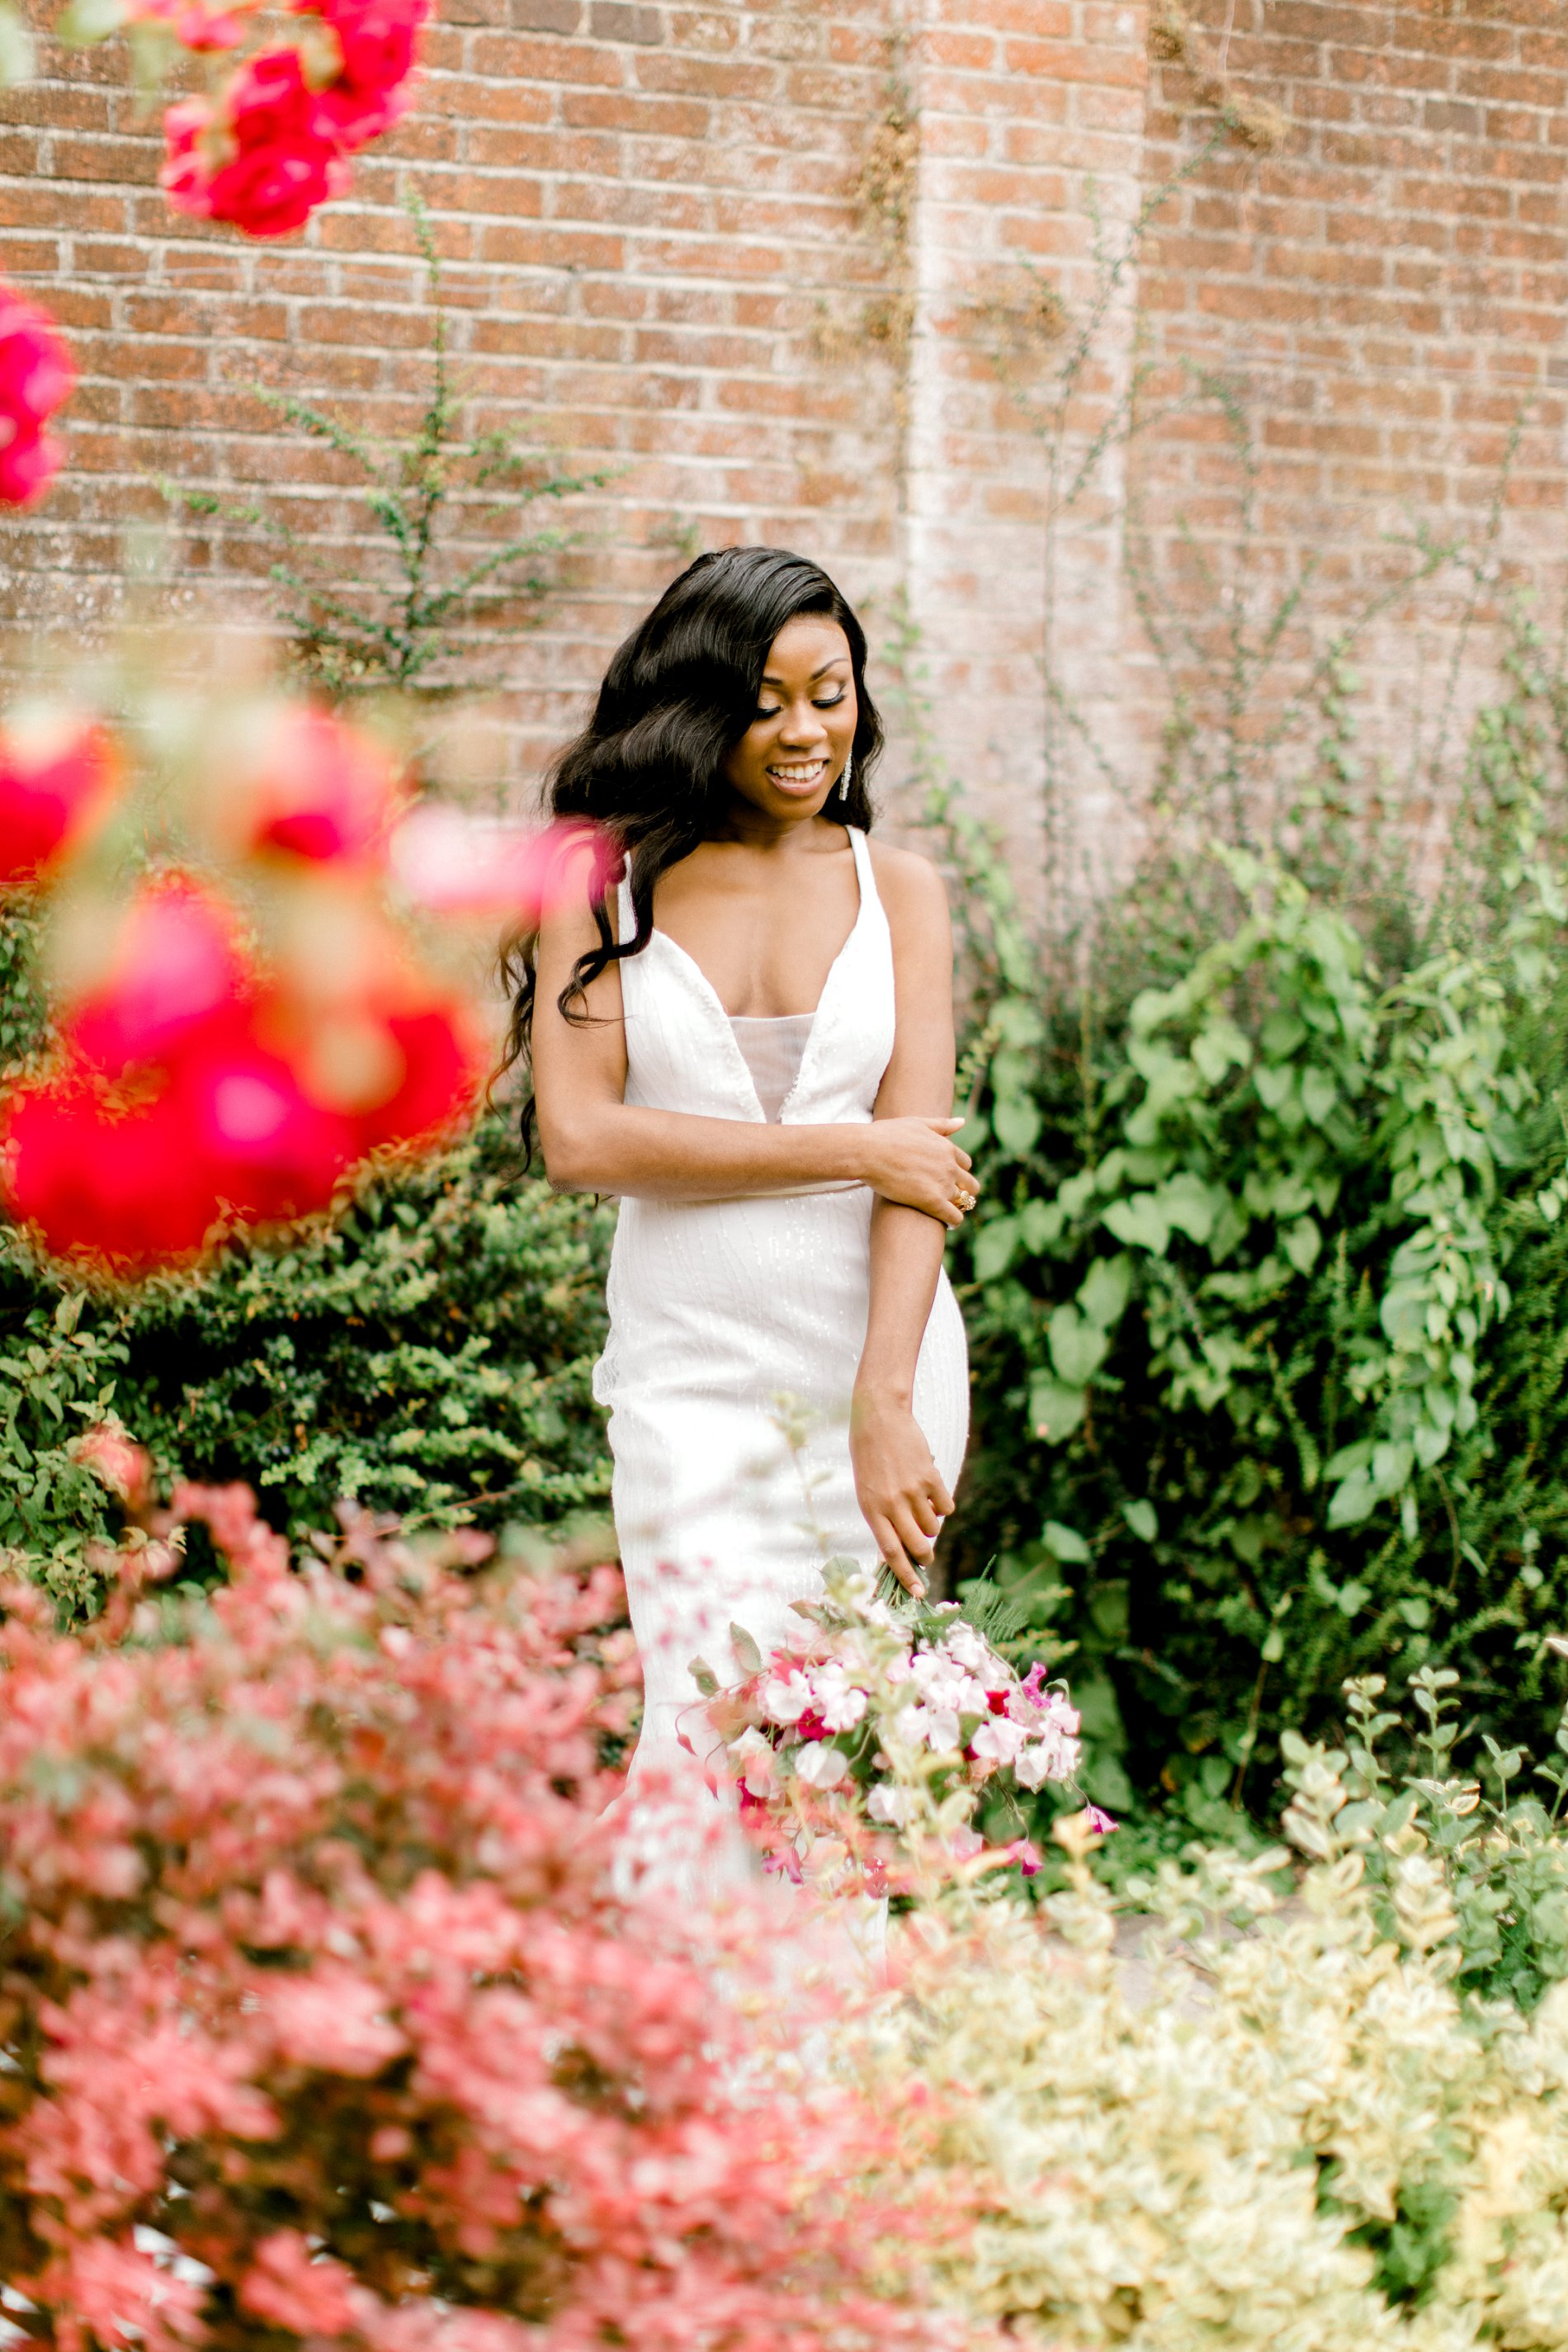 Forever Yours Styled Shoot (c) Camilla J. Hards and Courtney Dee Photography (55)